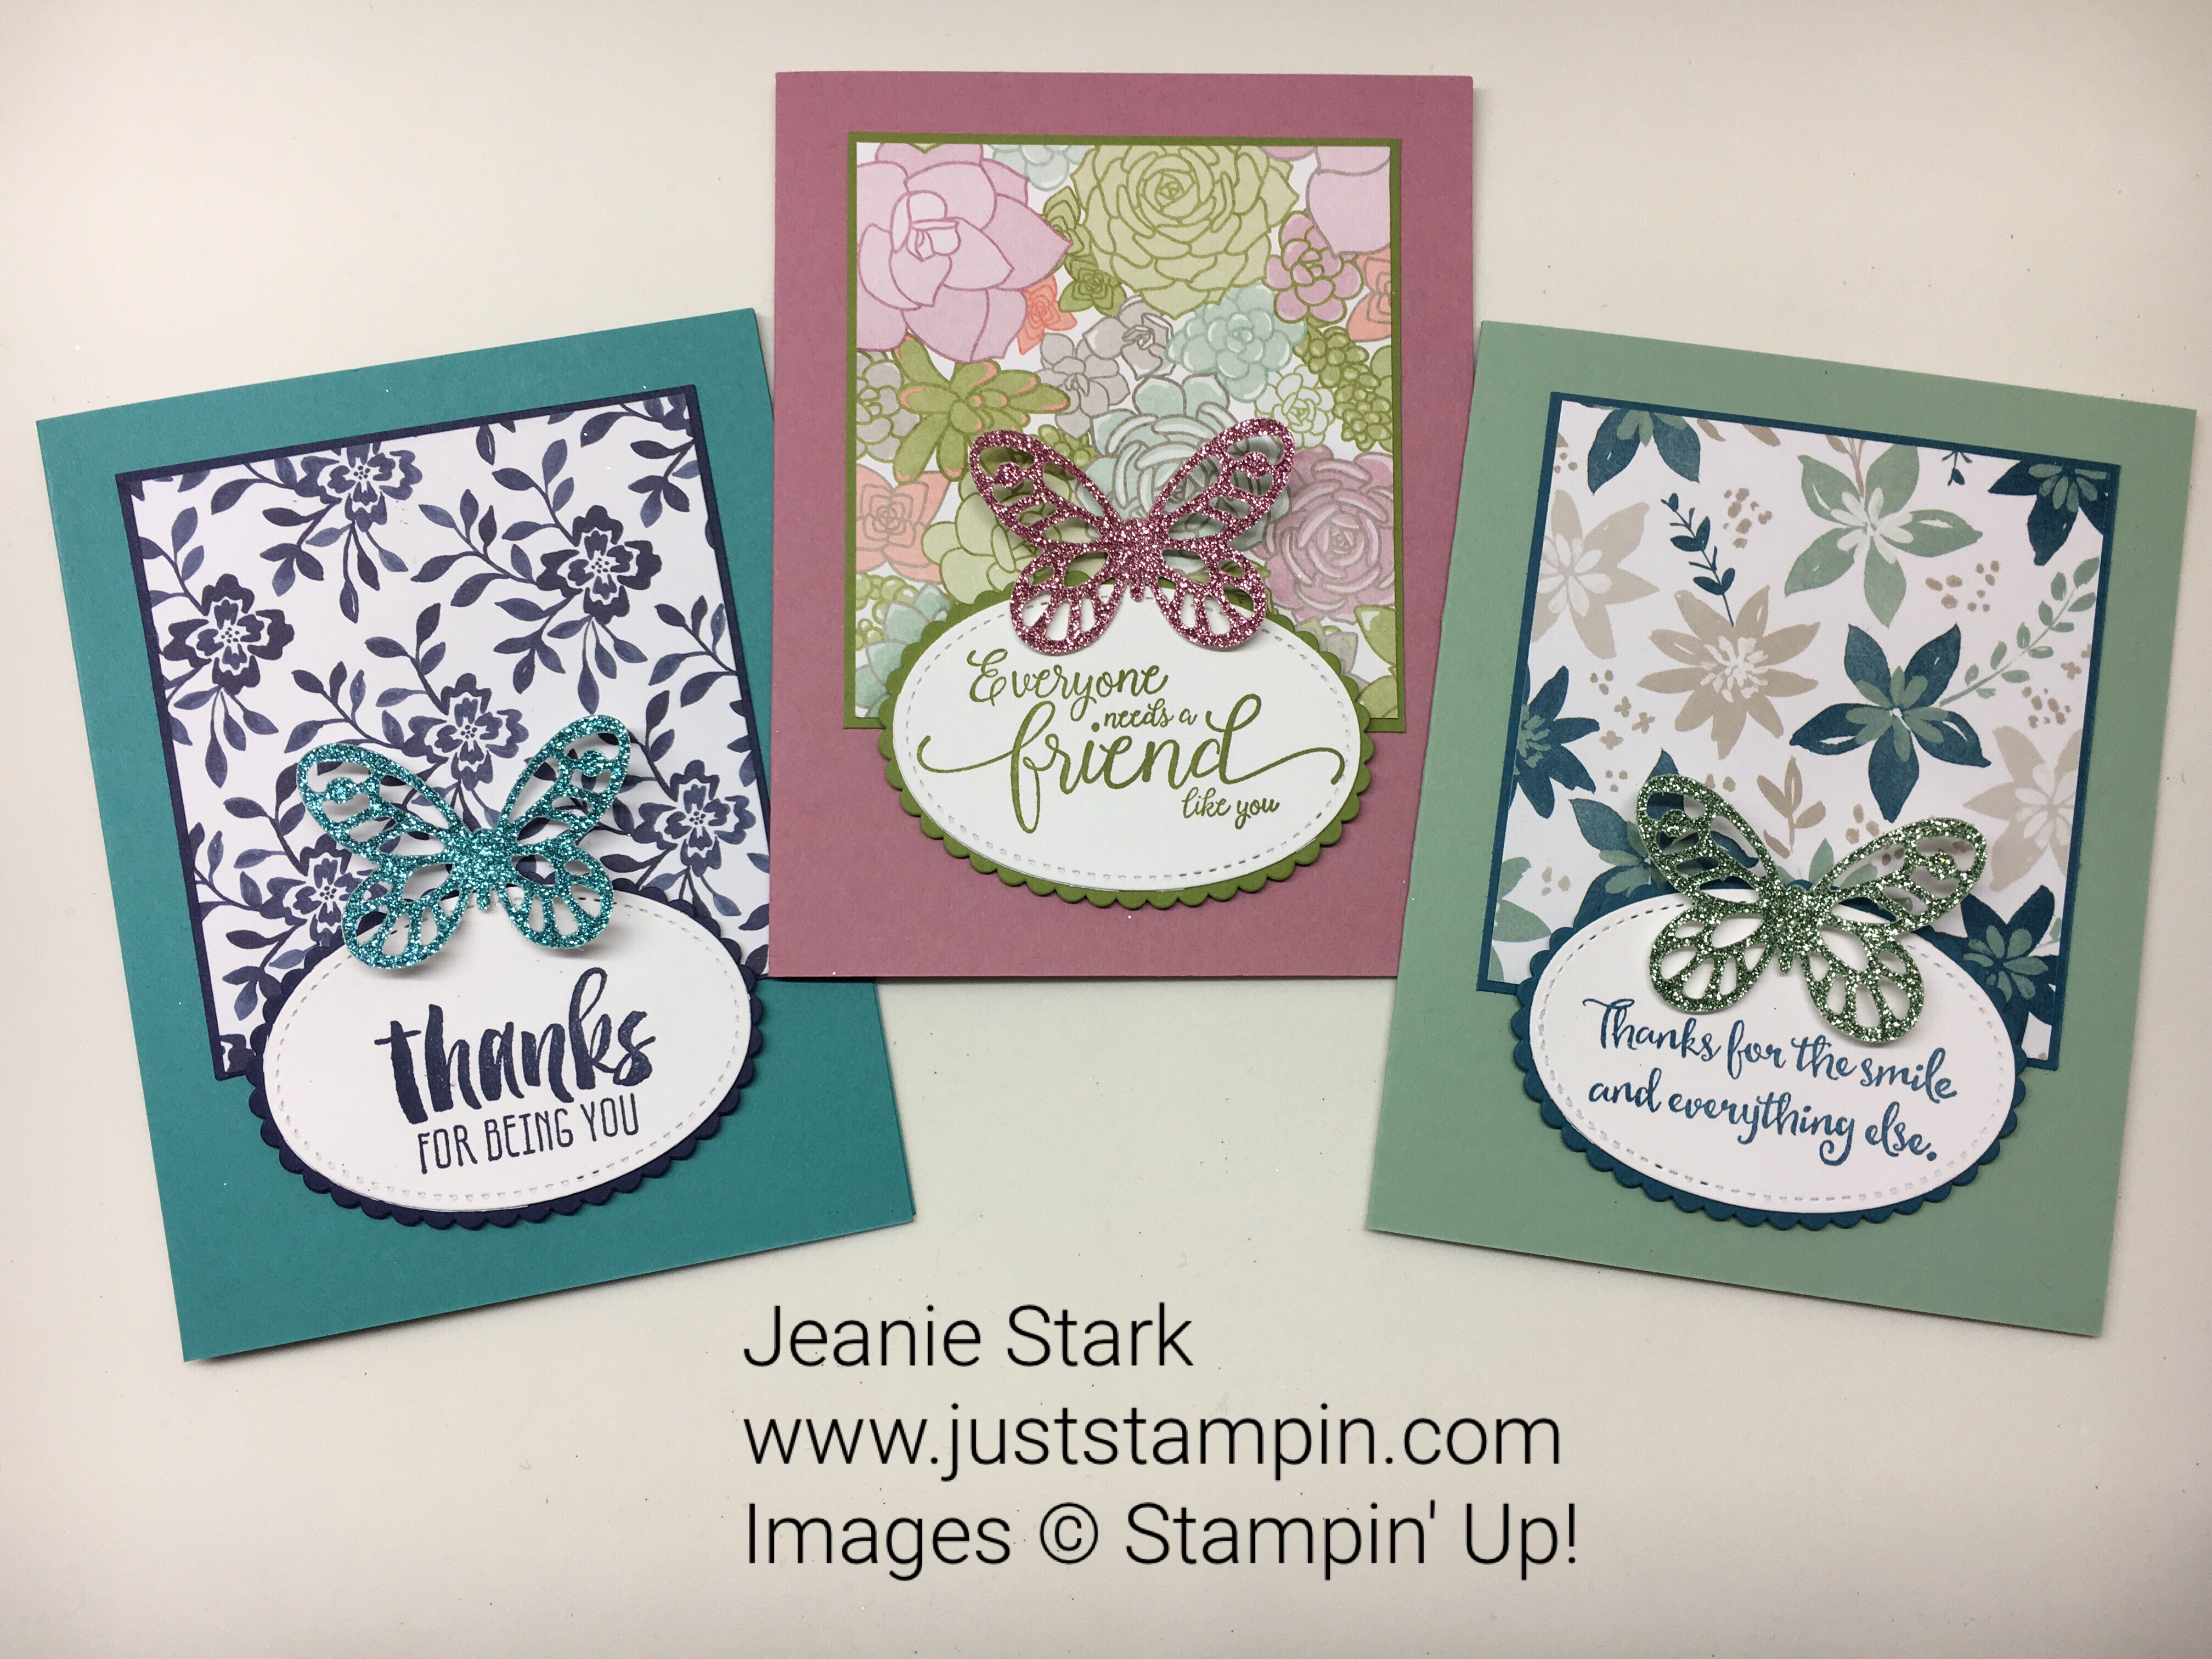 Stampin Up Clean & Simple Bold Butterfly Thank You card ideas - Jeanie Stark StampinUp